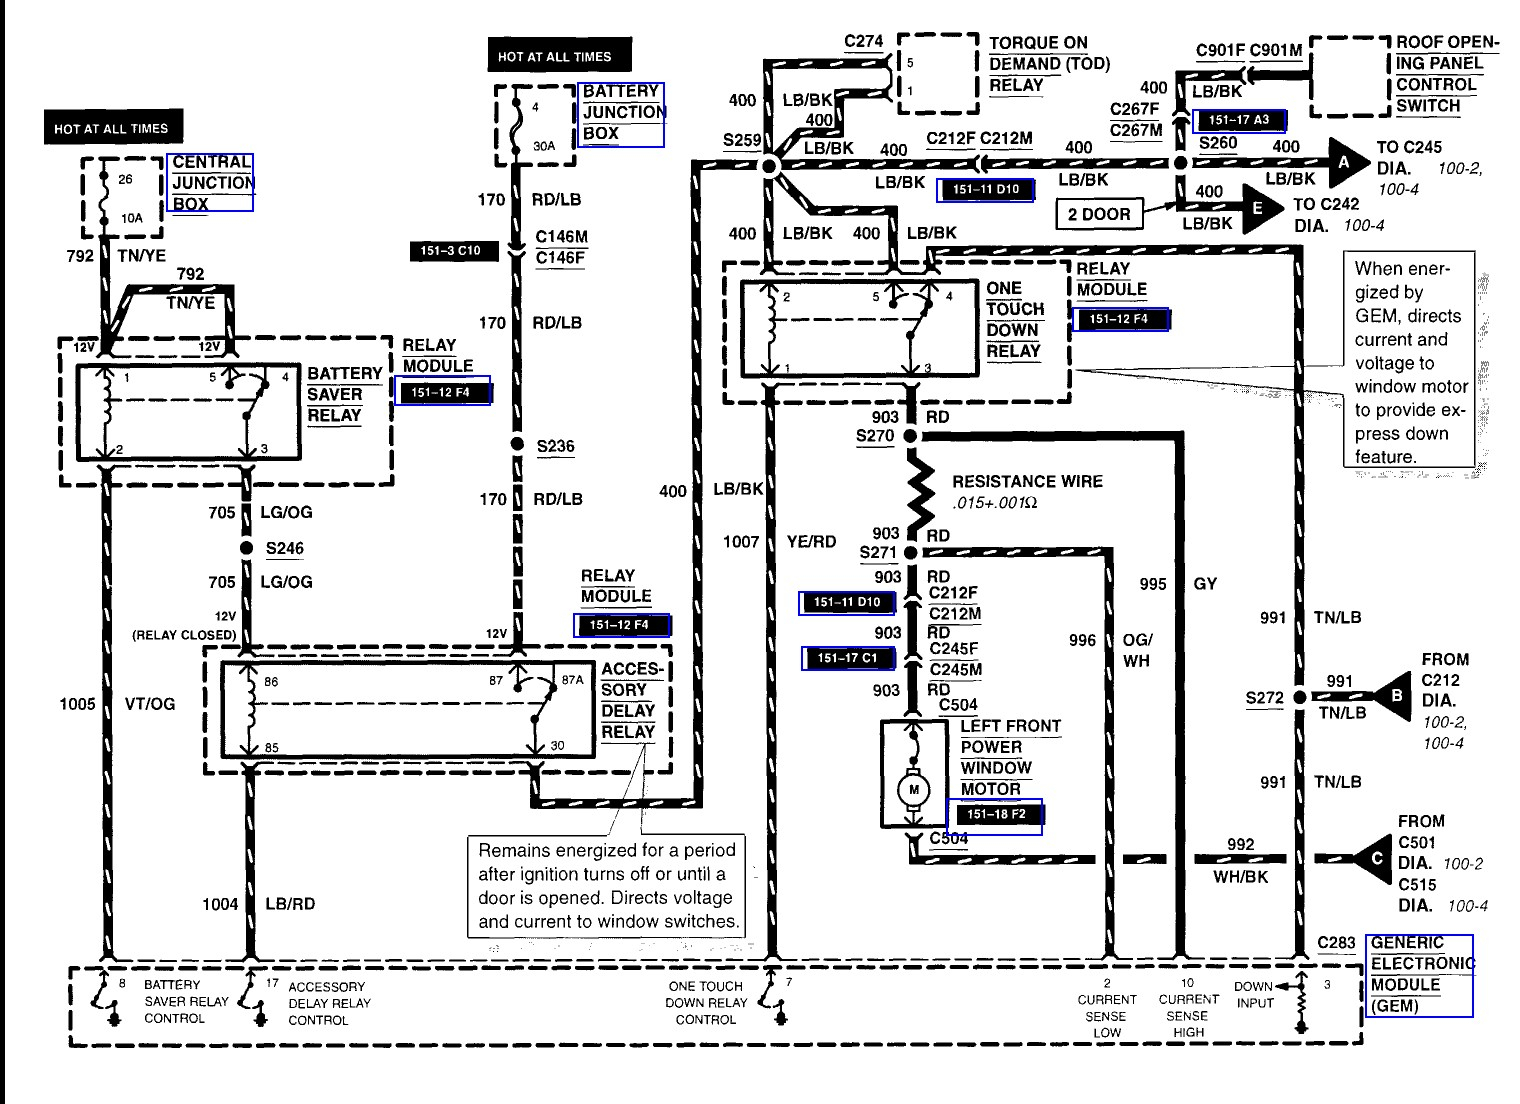 2003 excursion fuse diagram - hunter 3 speed fan switch wiring diagram for wiring  diagram schematics  wiring diagram schematics